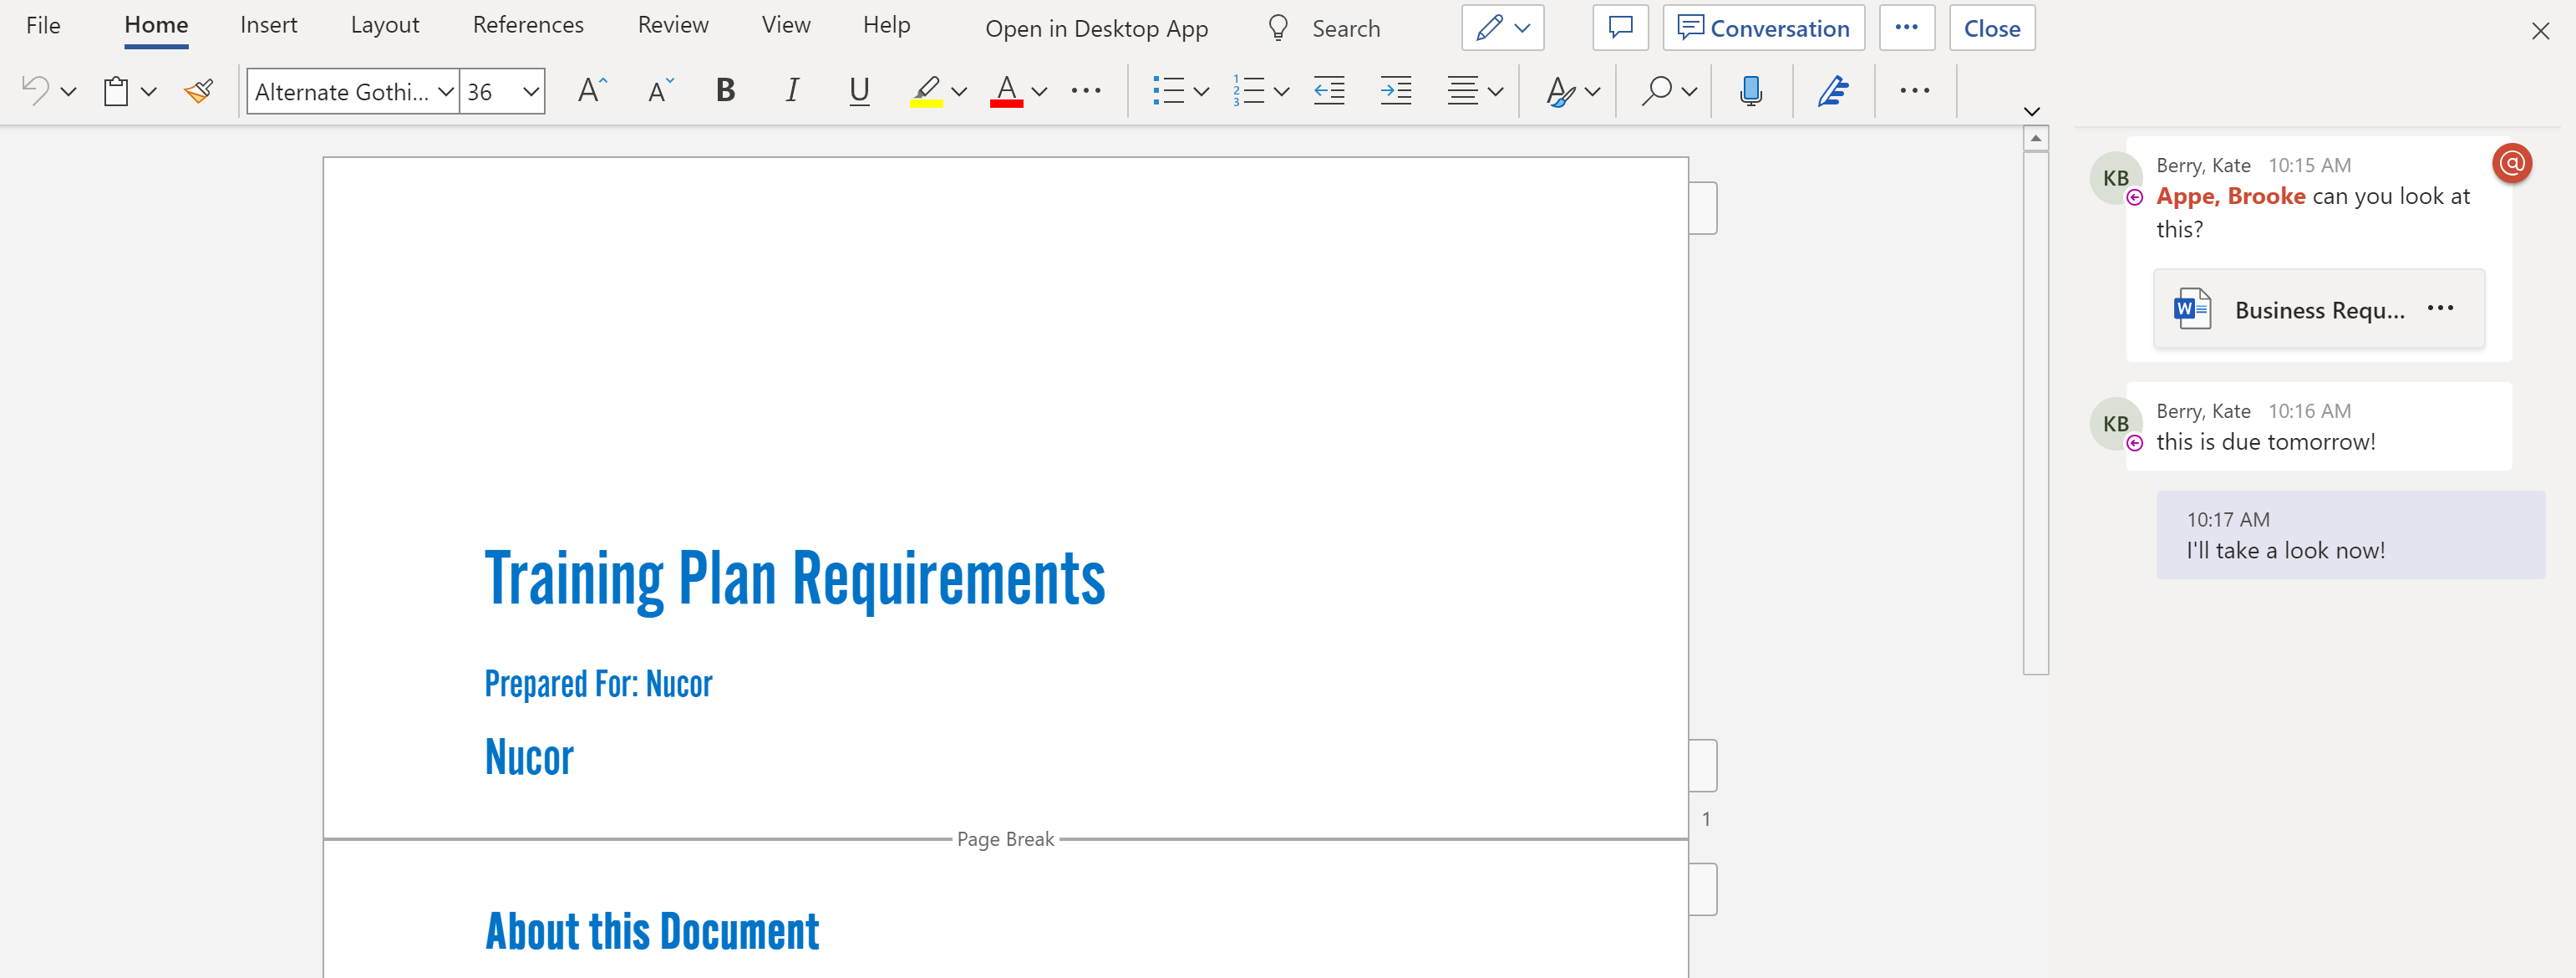 Teams discussion in word document